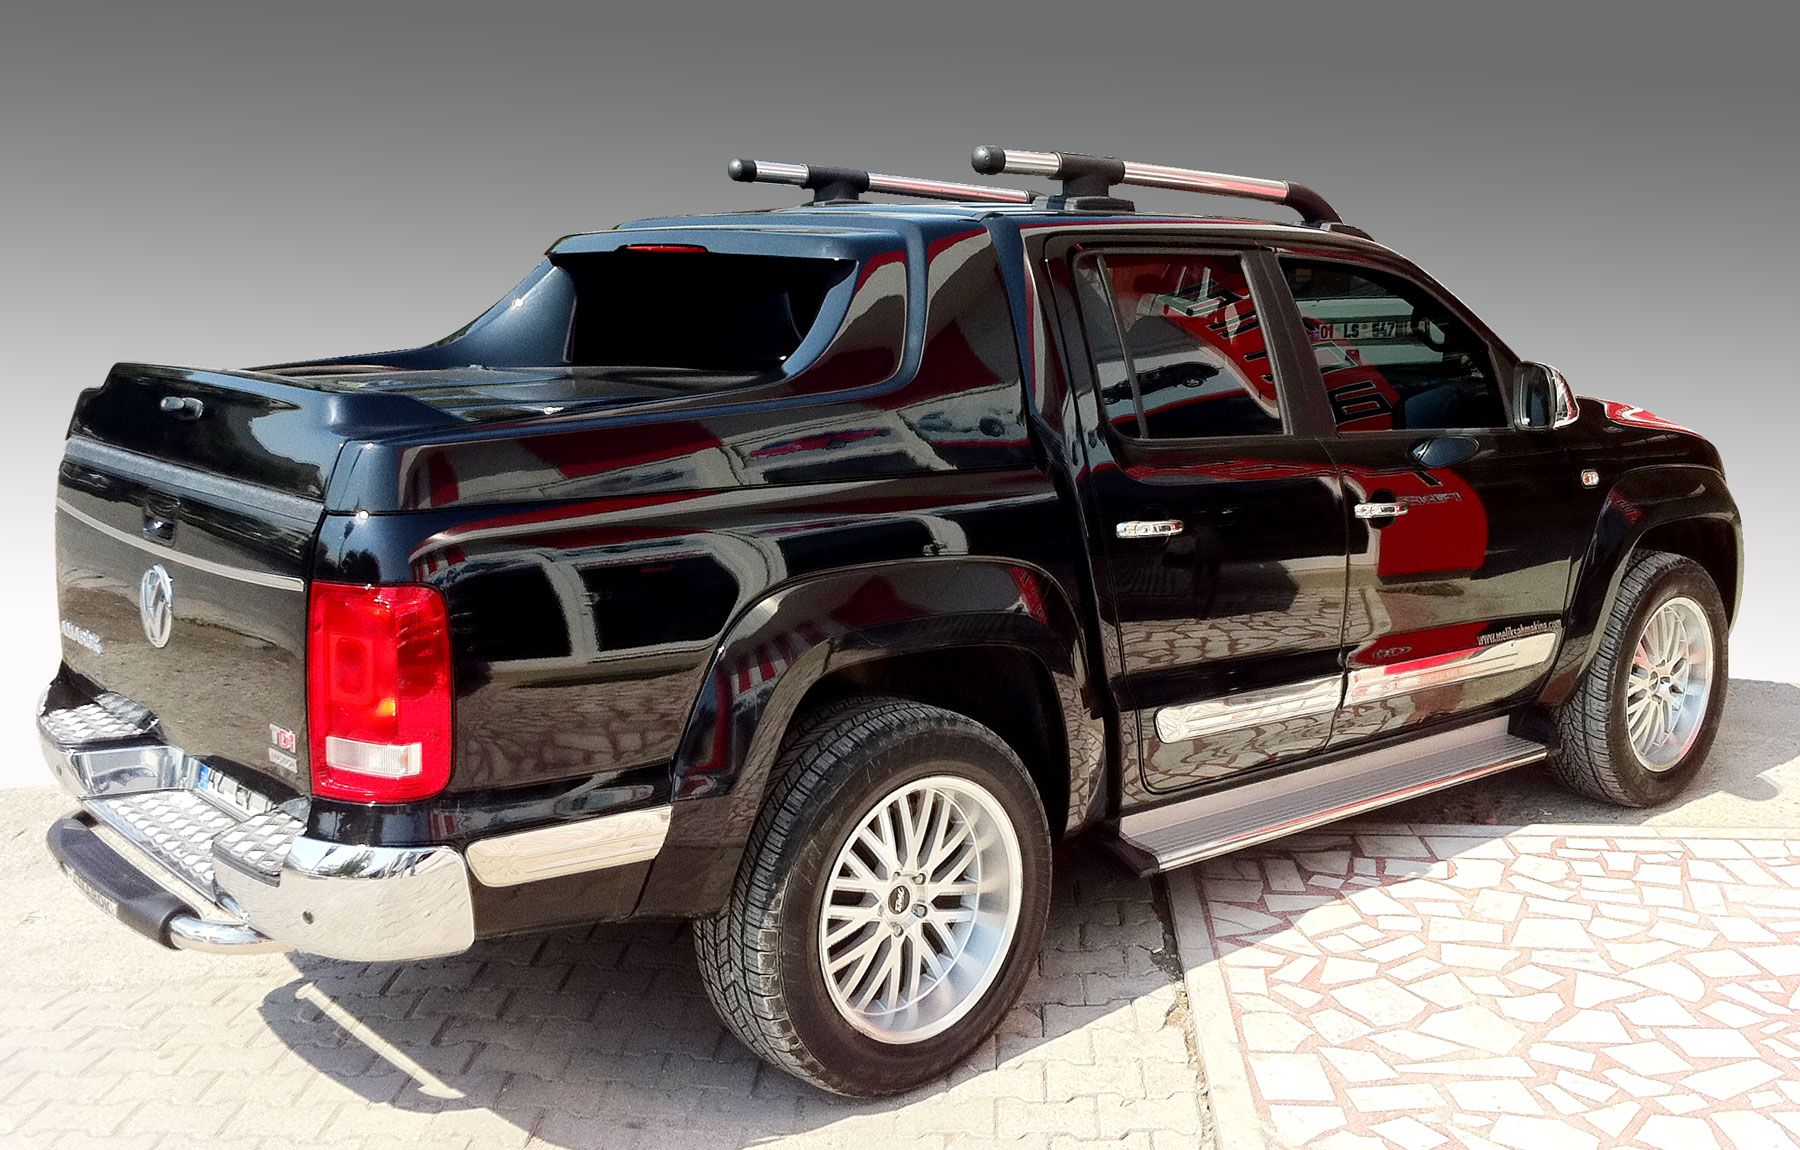 Vw Amarok Usa >> Volkswagen Amarok Wtf Vw Why Won T You Sell This In The